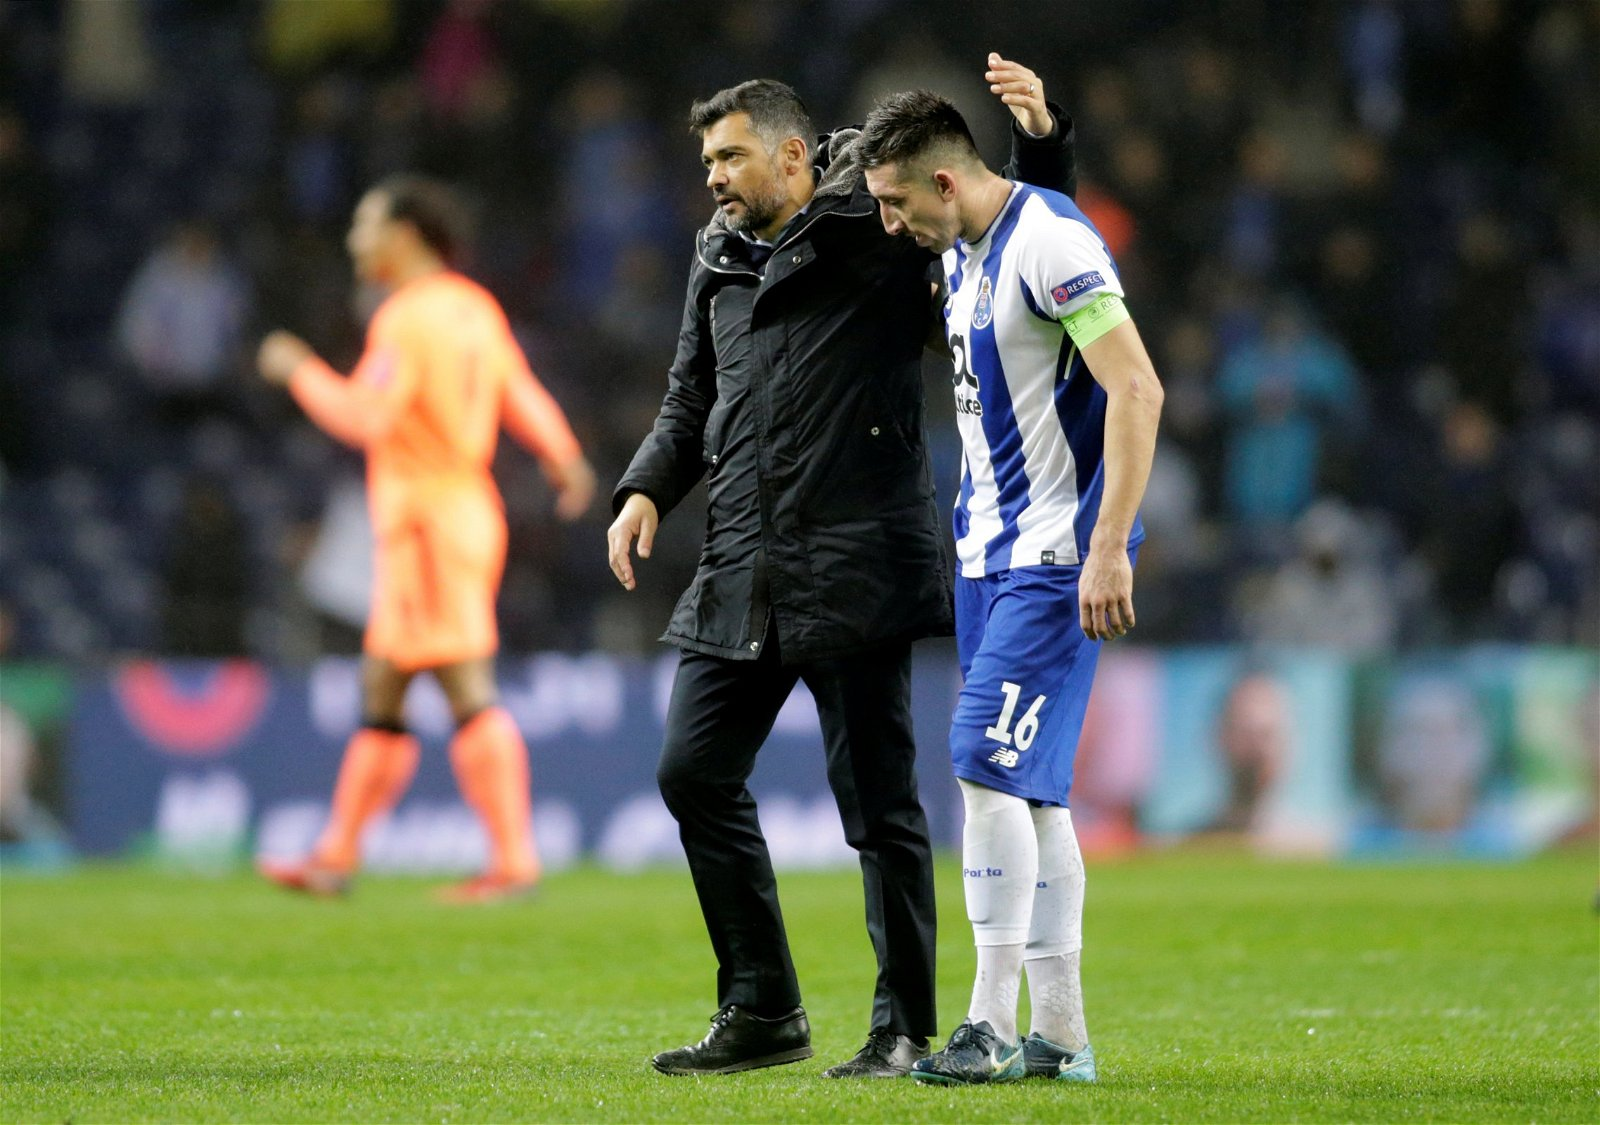 Sergio Conceiao consoles one of his Porto players